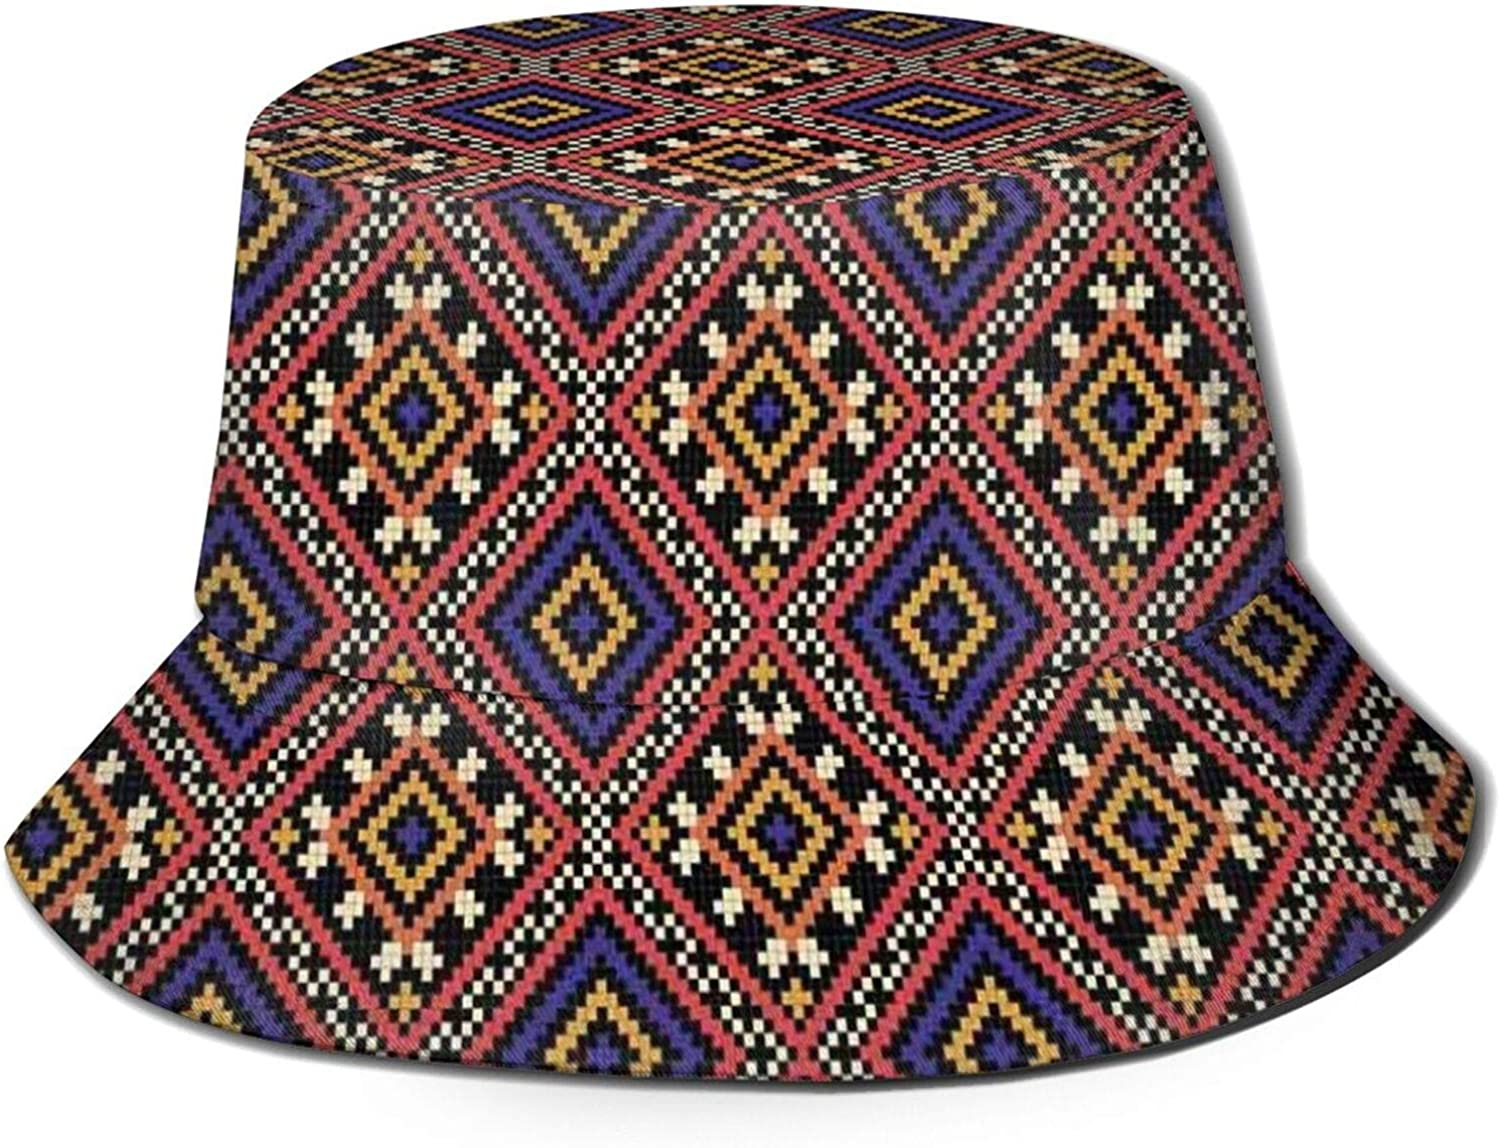 Cotton Packable Summer Inventory 2021 cleanup selling sale Travel Sun Hat Bucket Beach